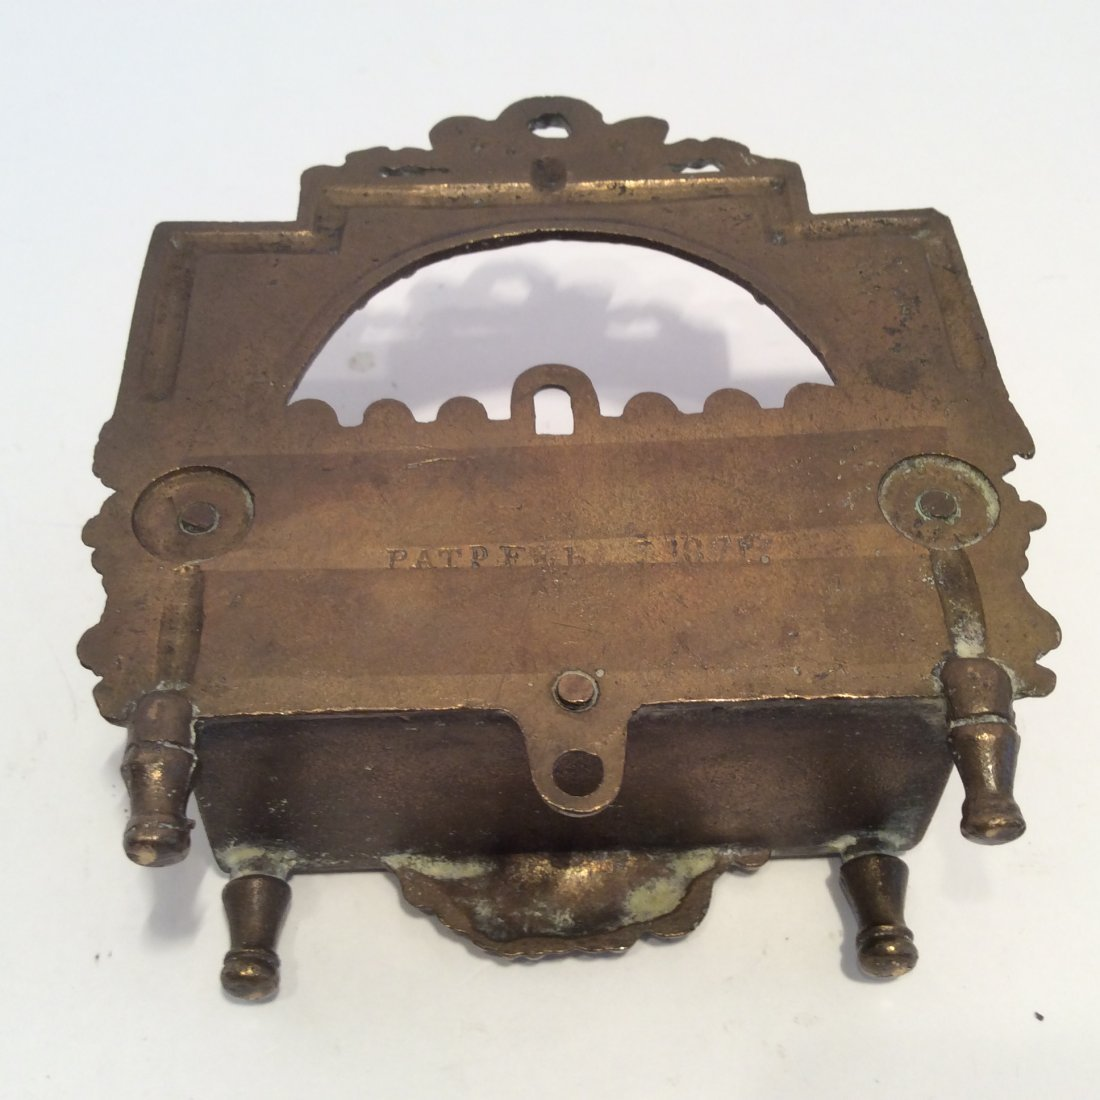 Antique miniature bronze 1871 match chest / safe - 2